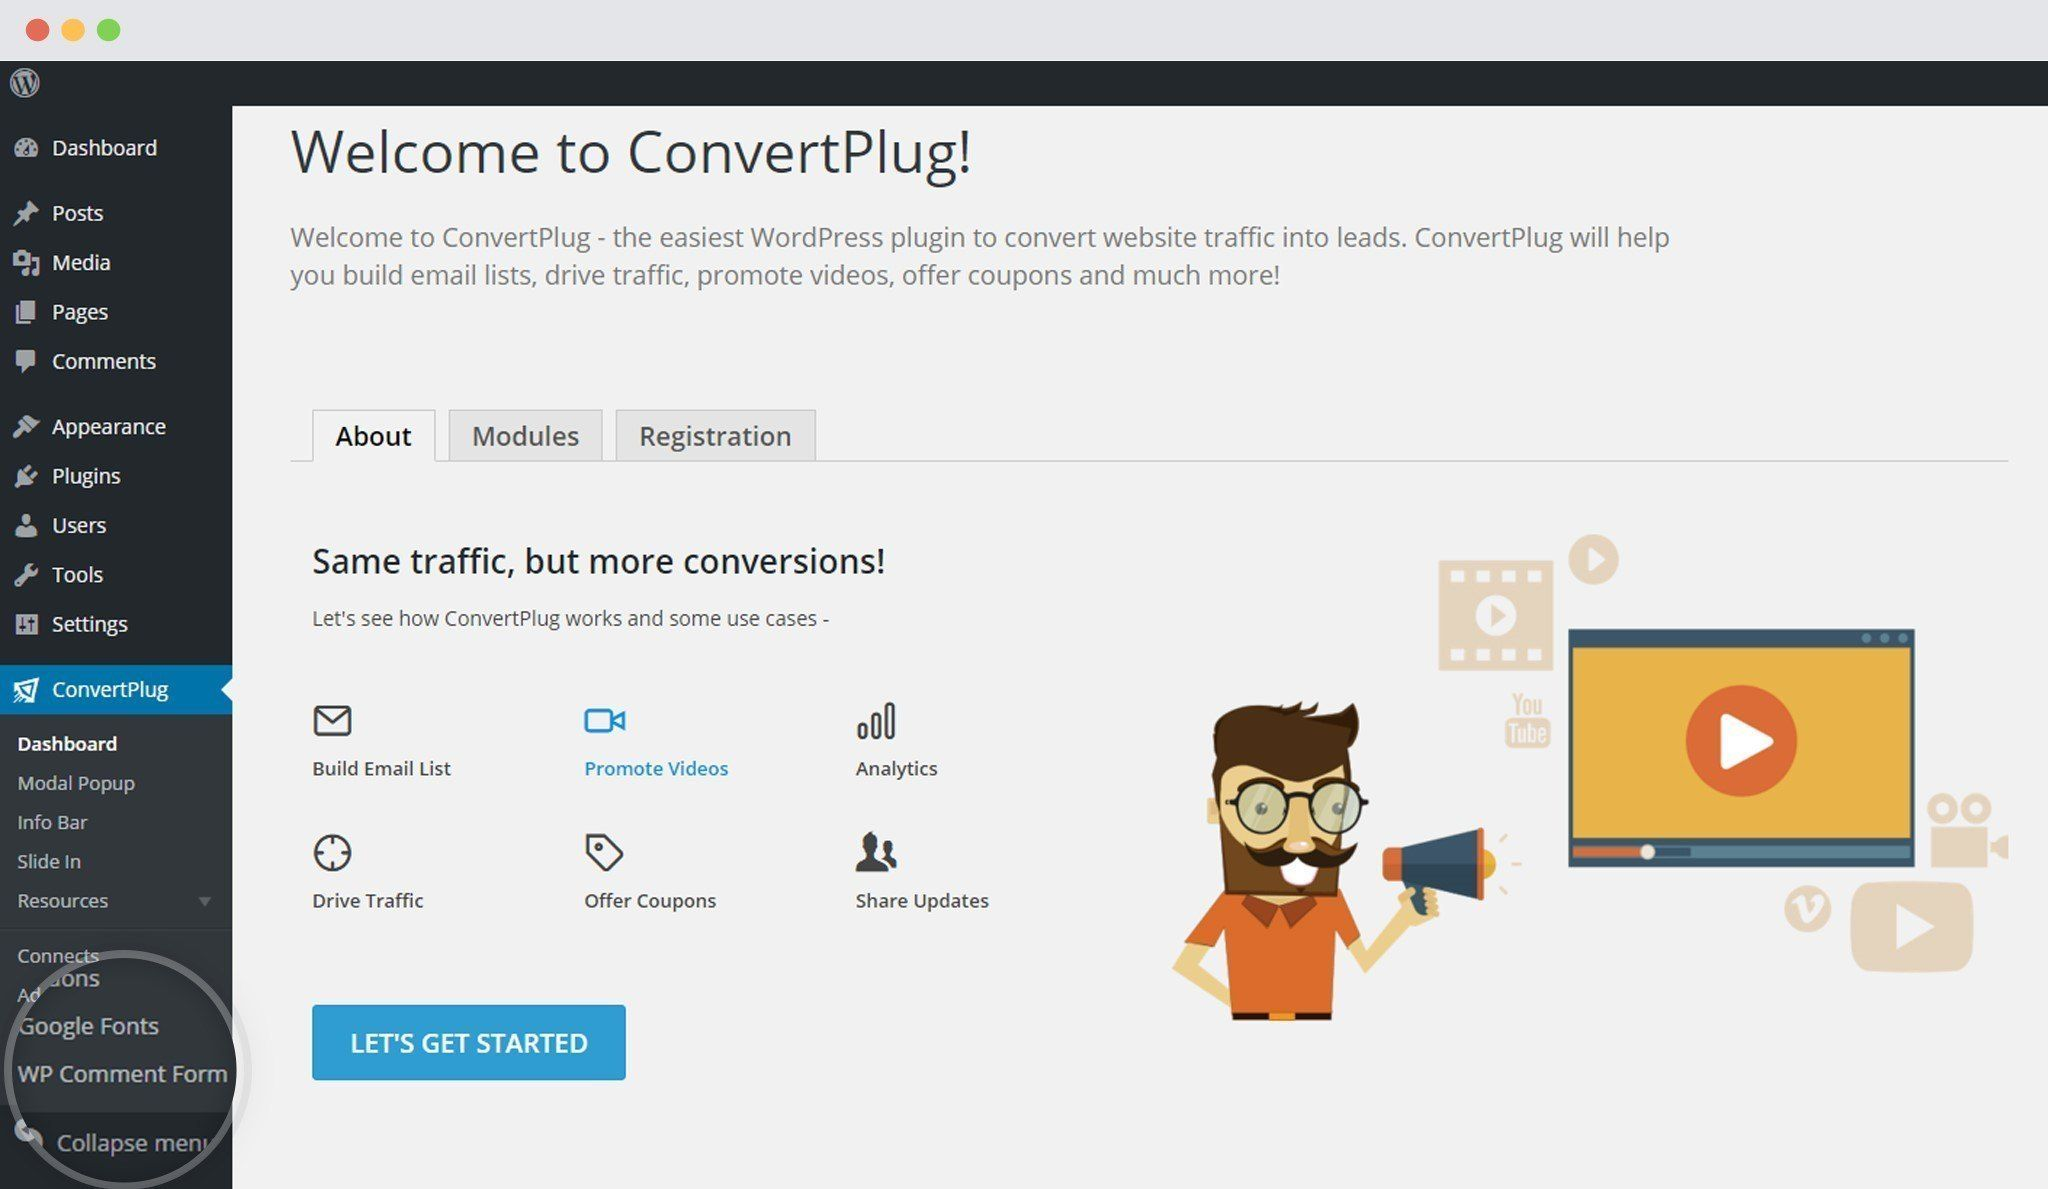 WP-Comment-Form-dashboard